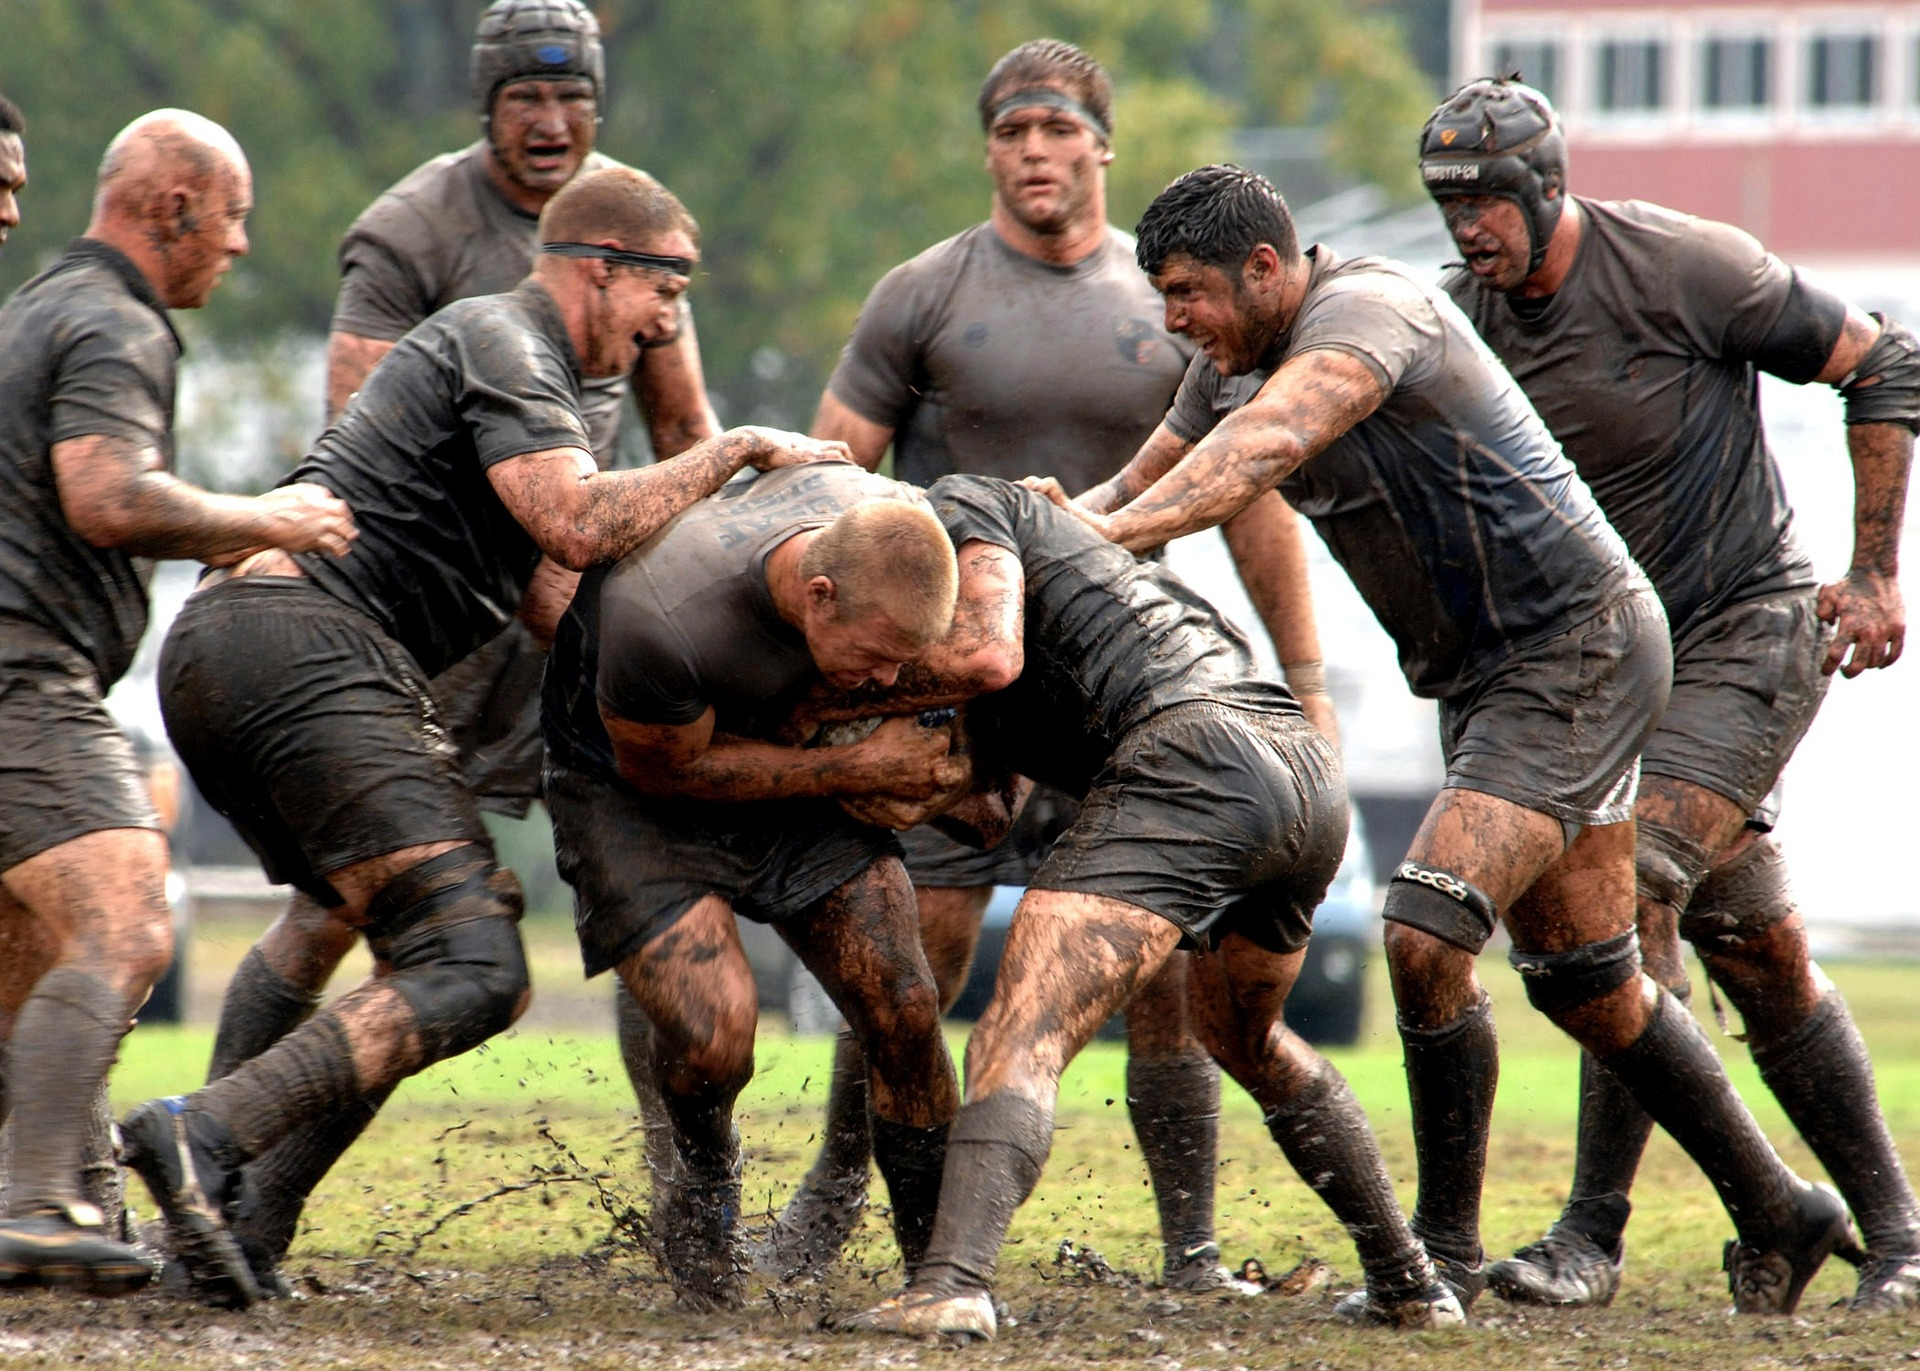 Rugby is a high-impact sport, helping by wearing  padding